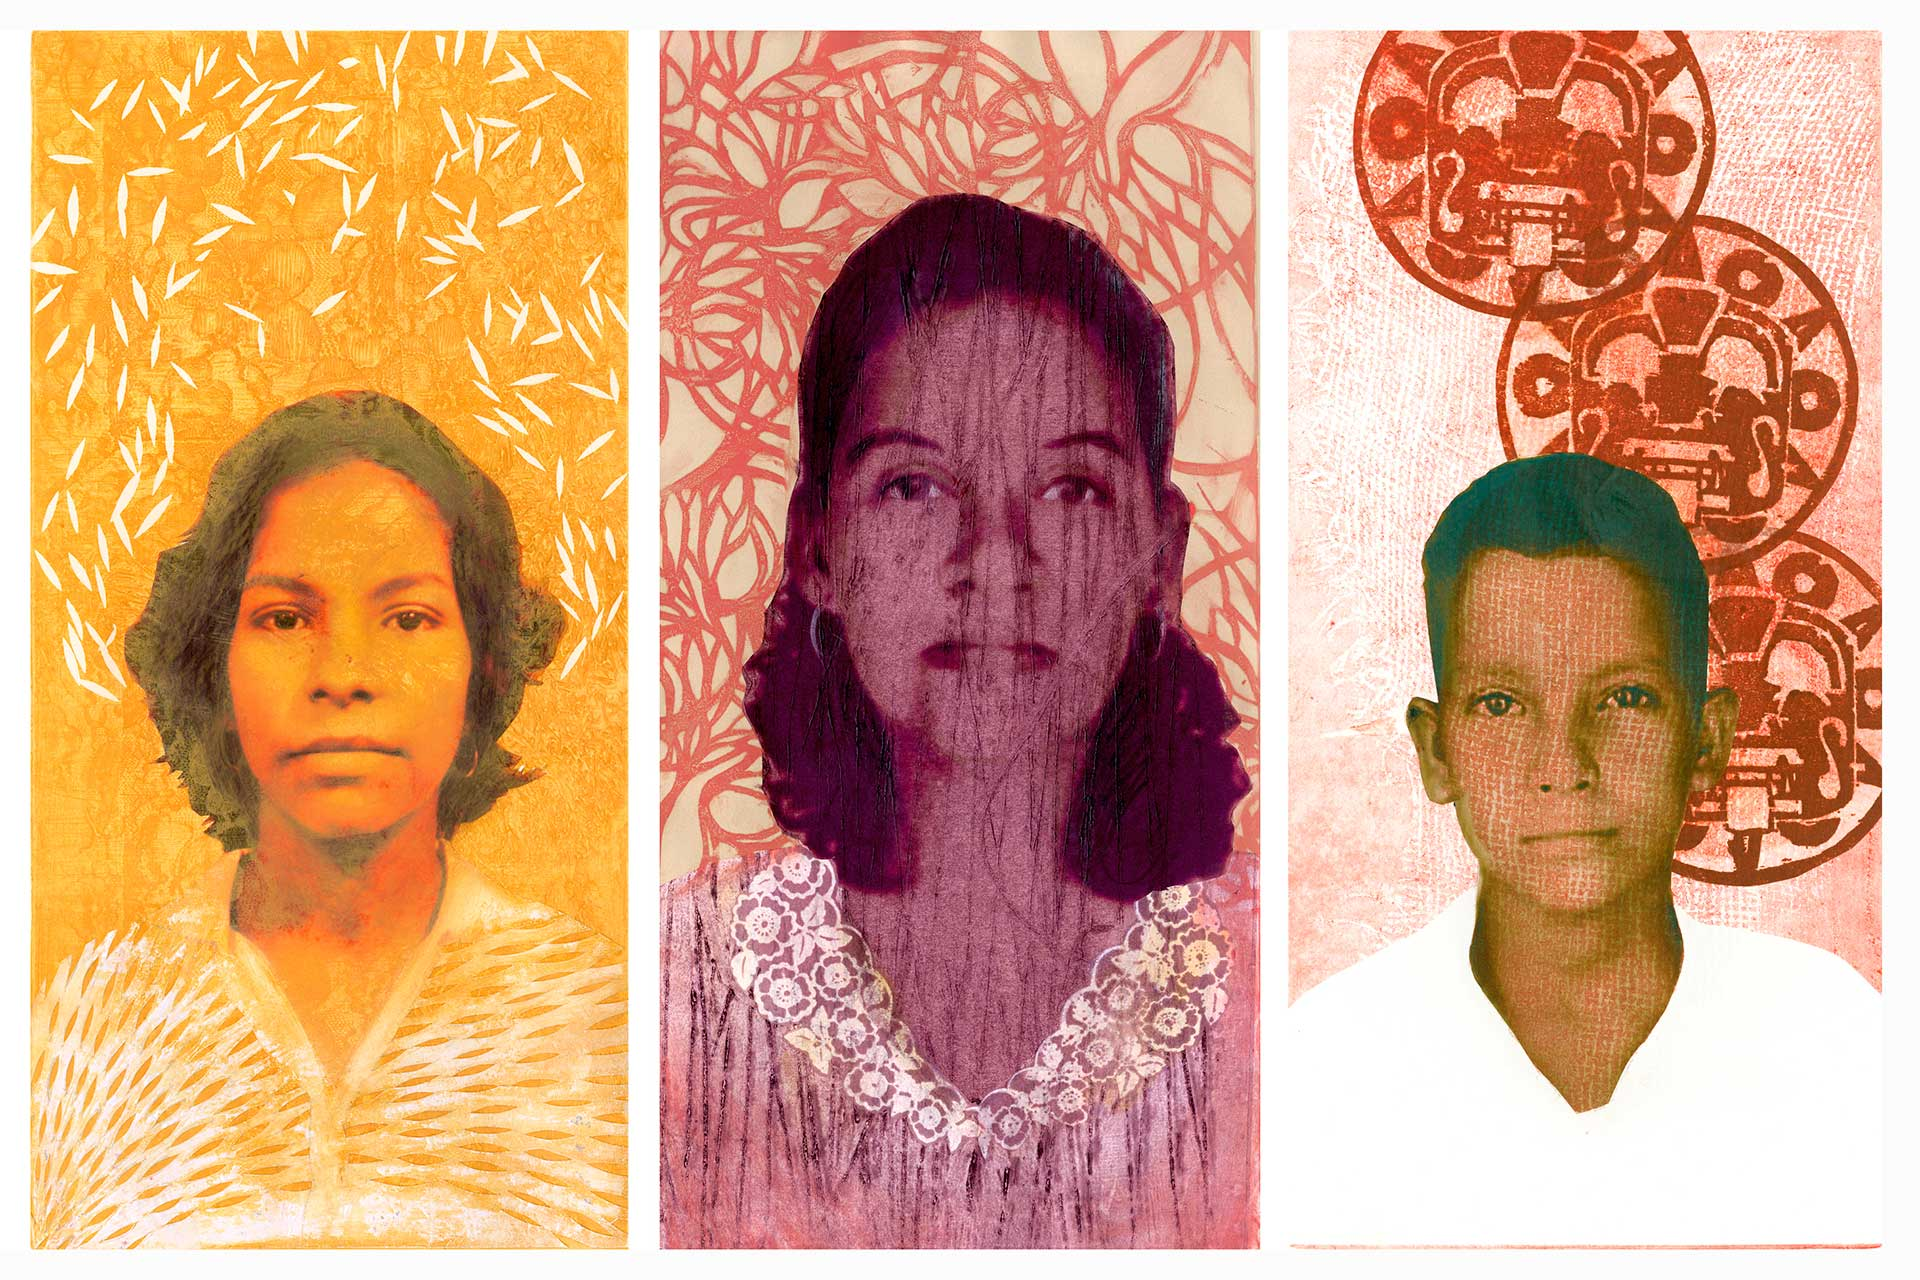 A mixed media art piece with images of a young girl, a middle aged woman, and a young boy.